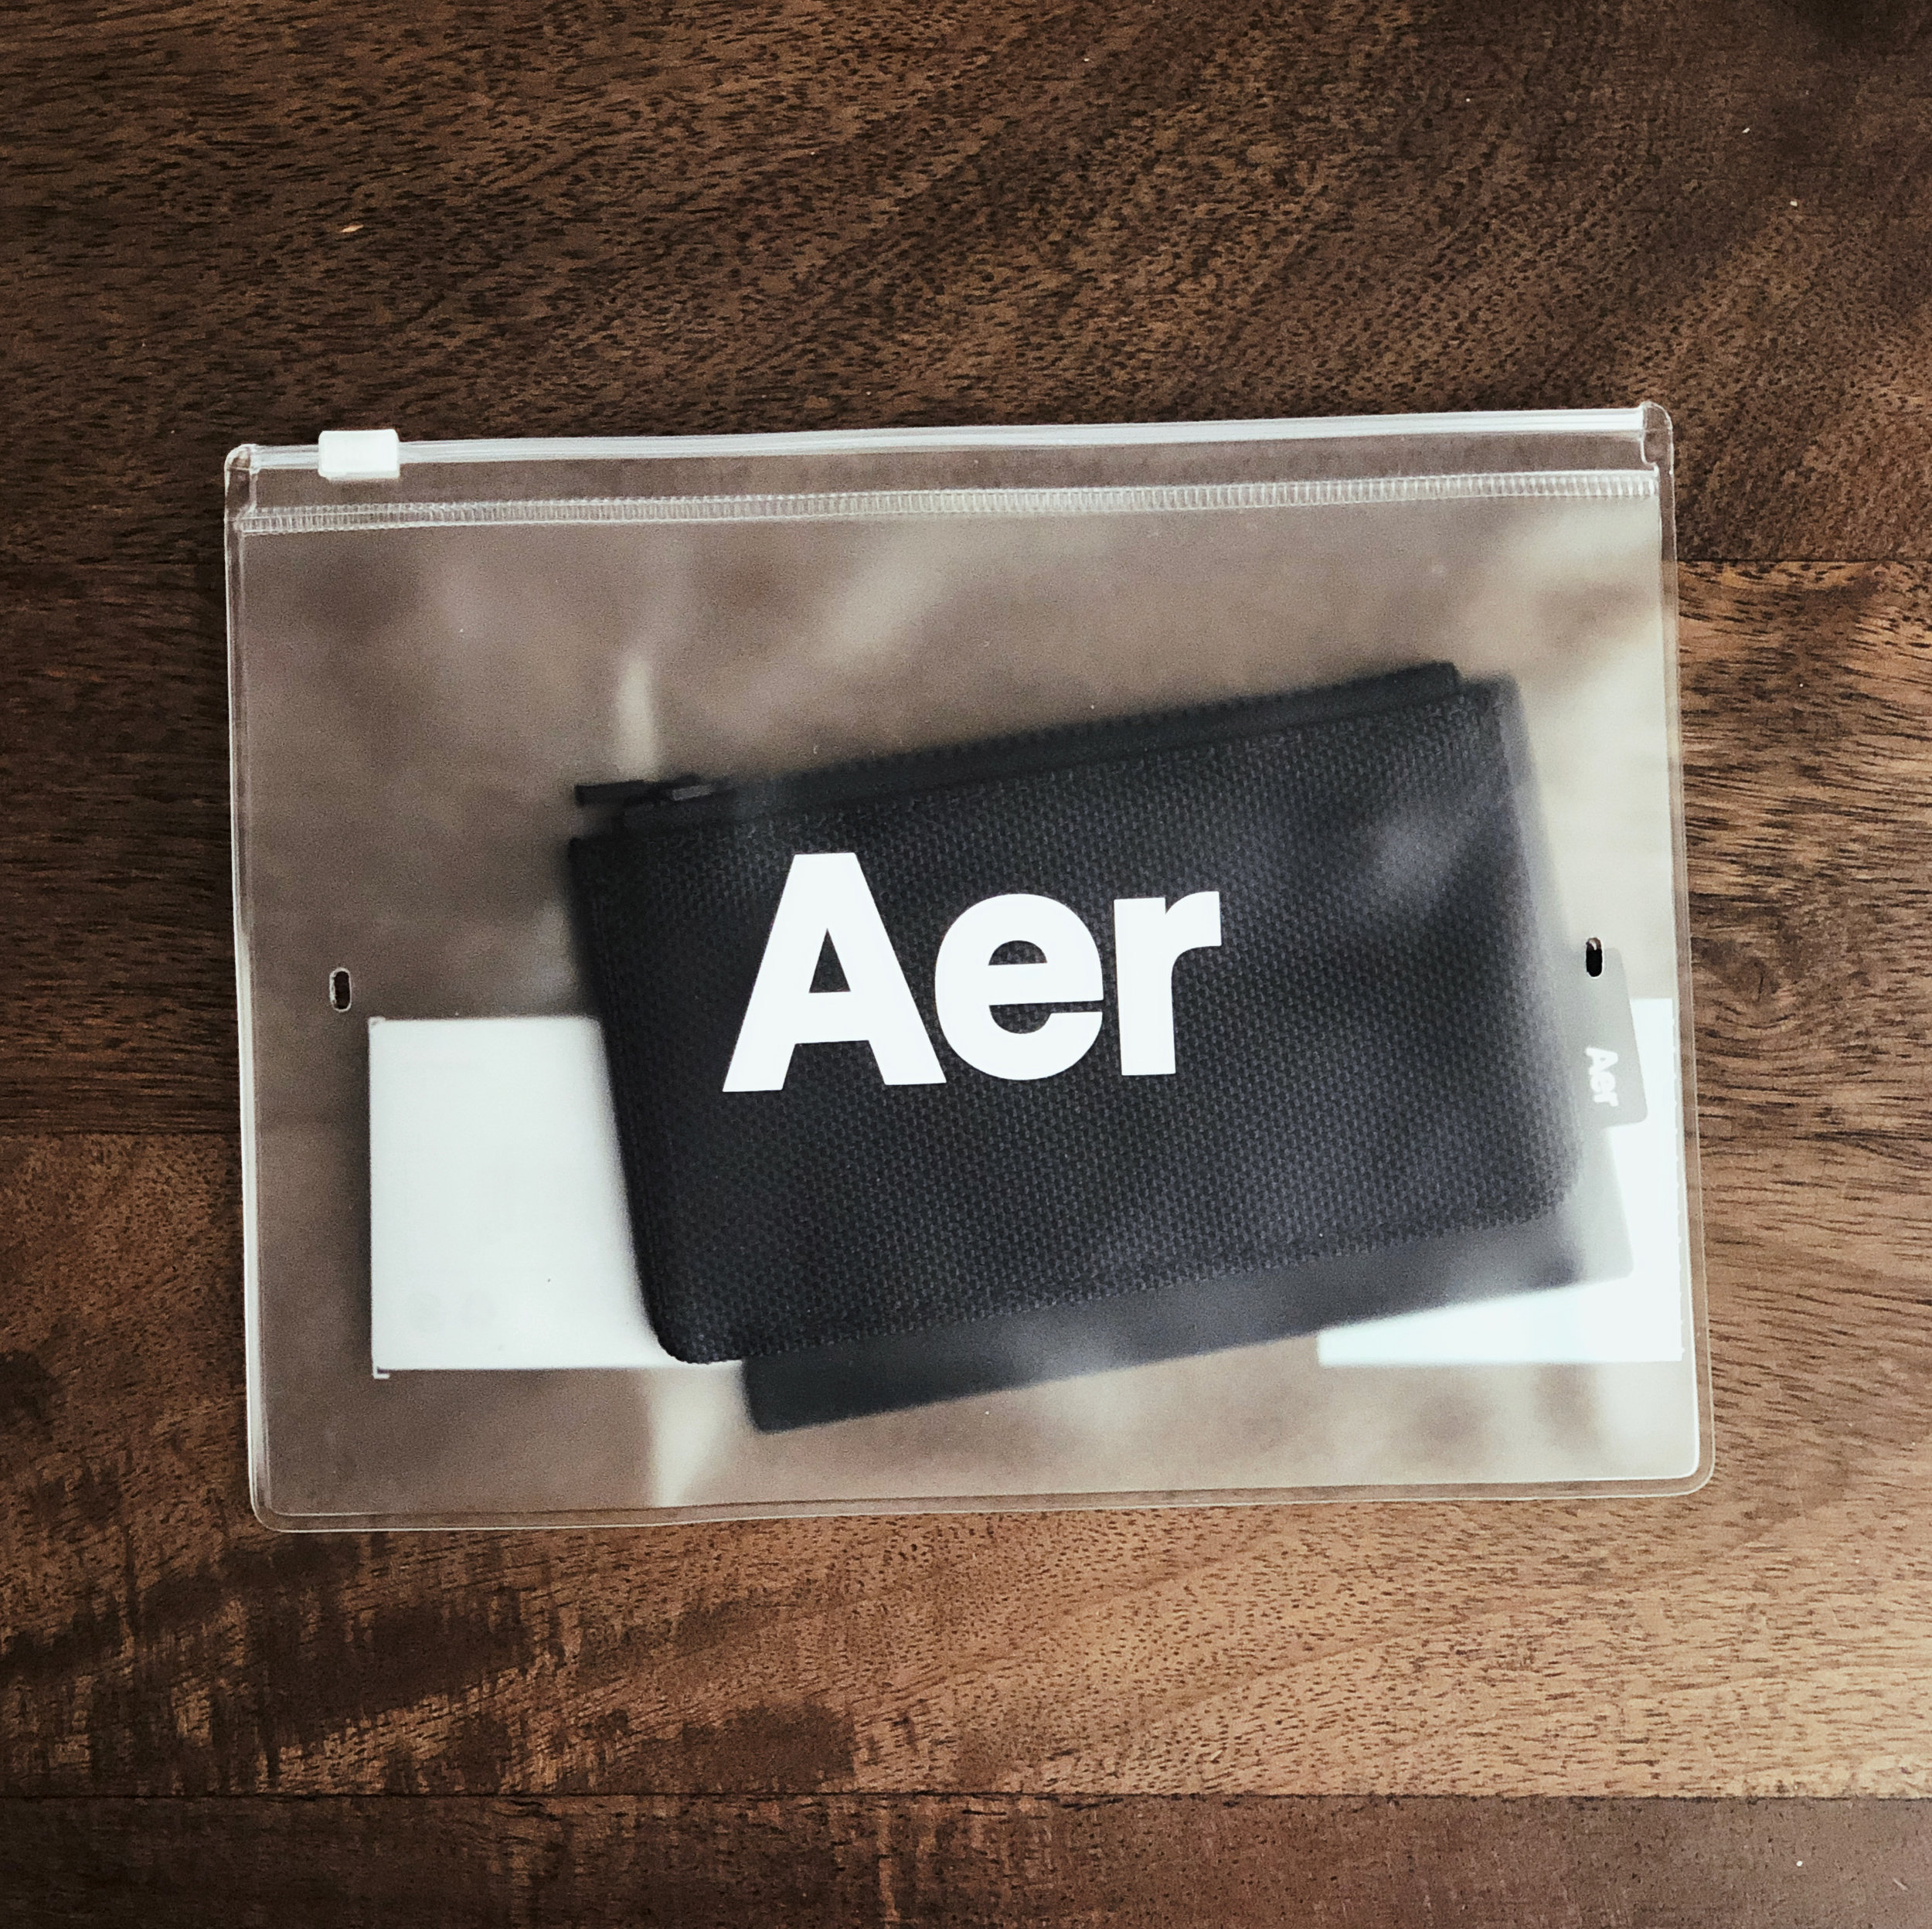 The Aer Cardholder as it arrives in its zippered plastic packaging